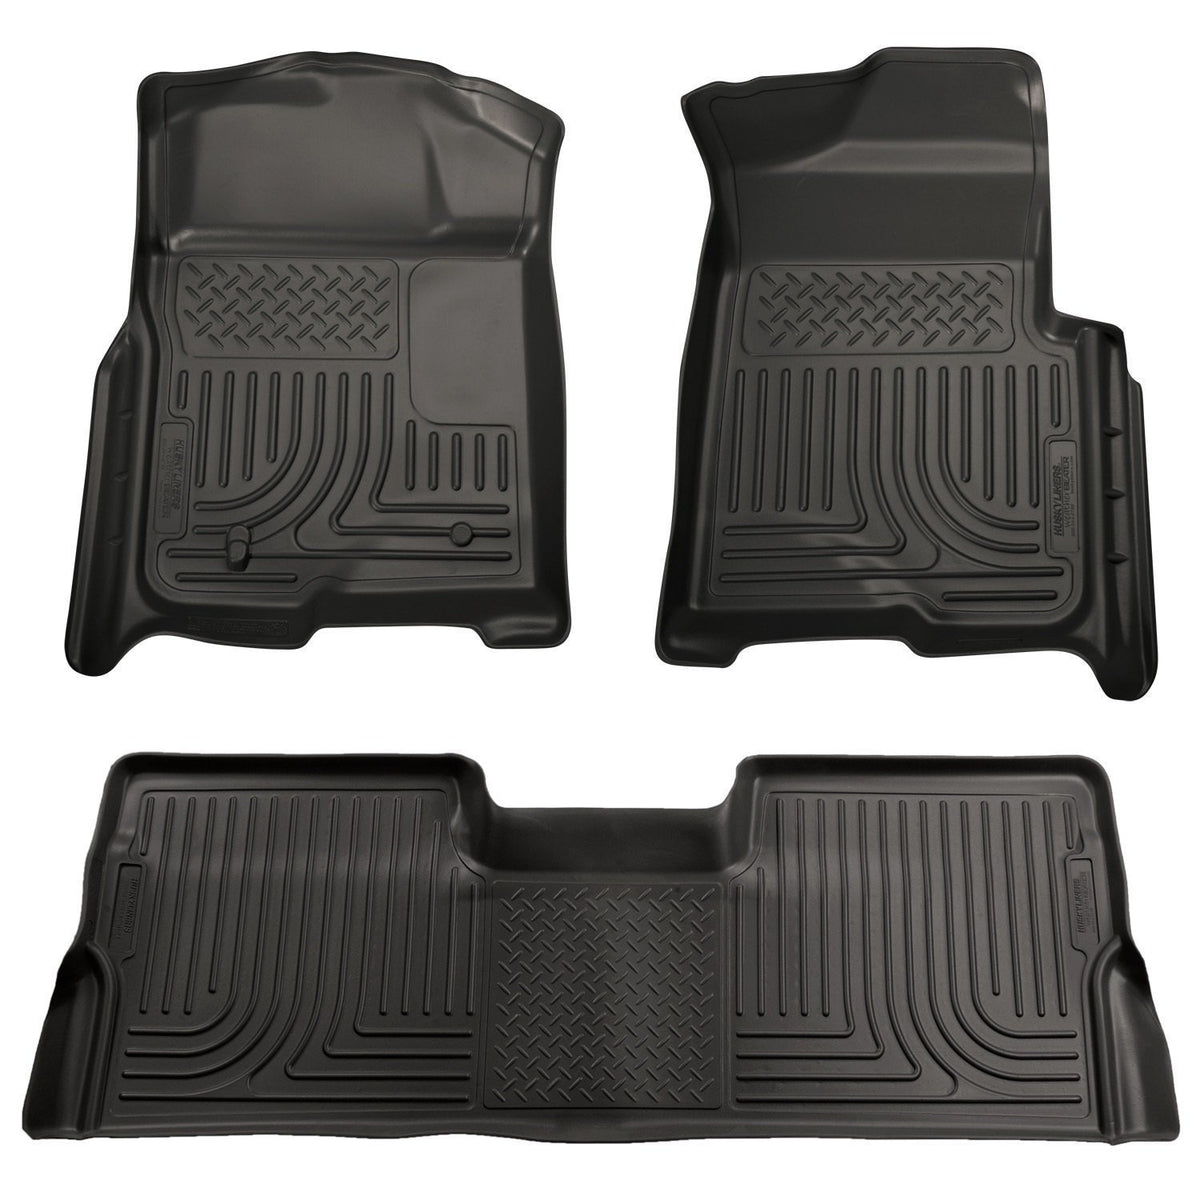 2009-2012 Ford F-150 Super Crew Cab WeatherBeater Combo Black Floor Liners by Husky Liners (98331) - Modern Automotive Performance